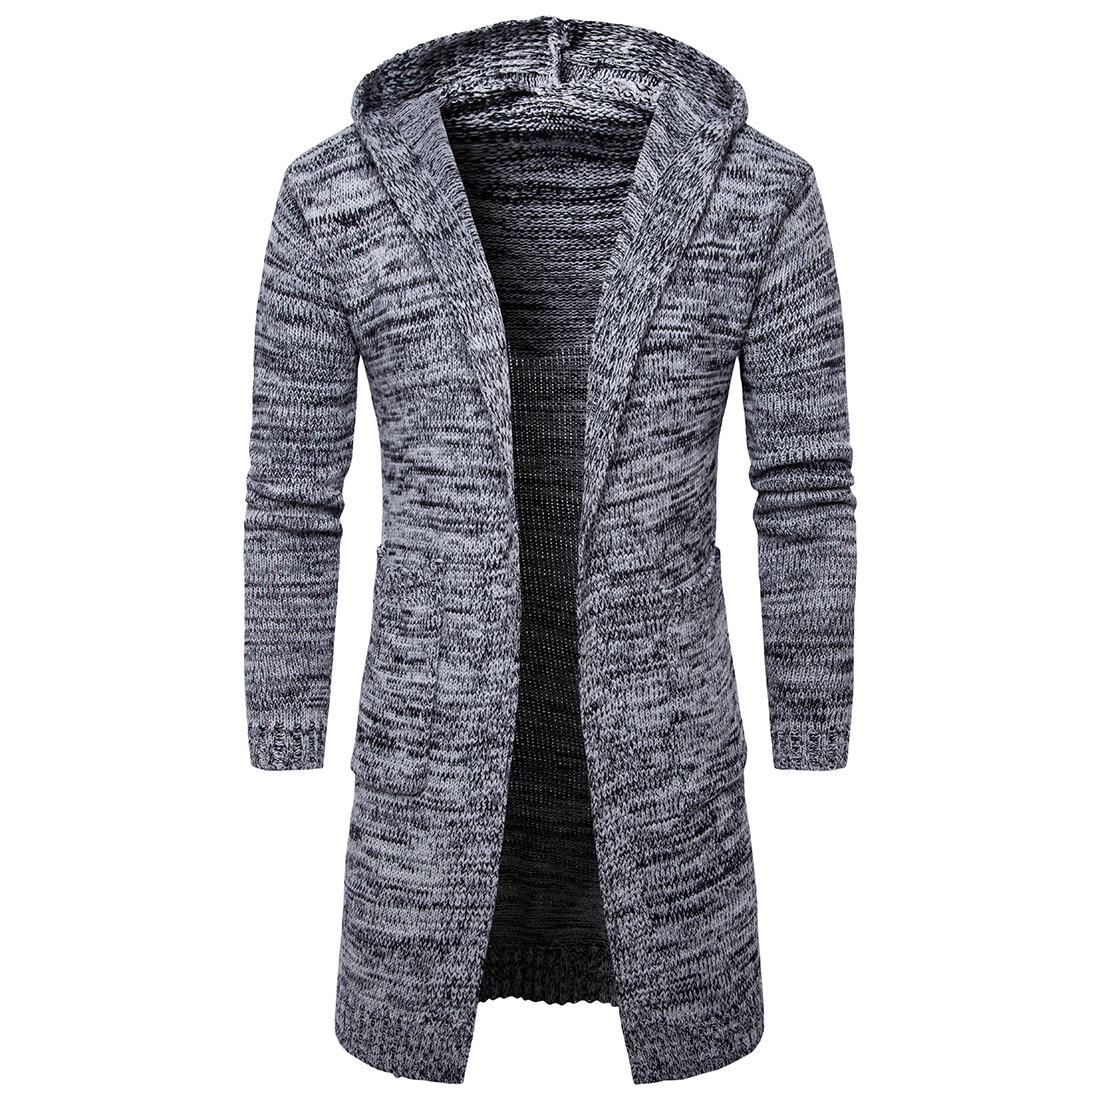 MD-Long Sleeve Knitted Cardigan Men 'S Solid Color Coat Slim Fit Outwear Cross-Border E-COMMERCE For Spring And Autumn Male Hood